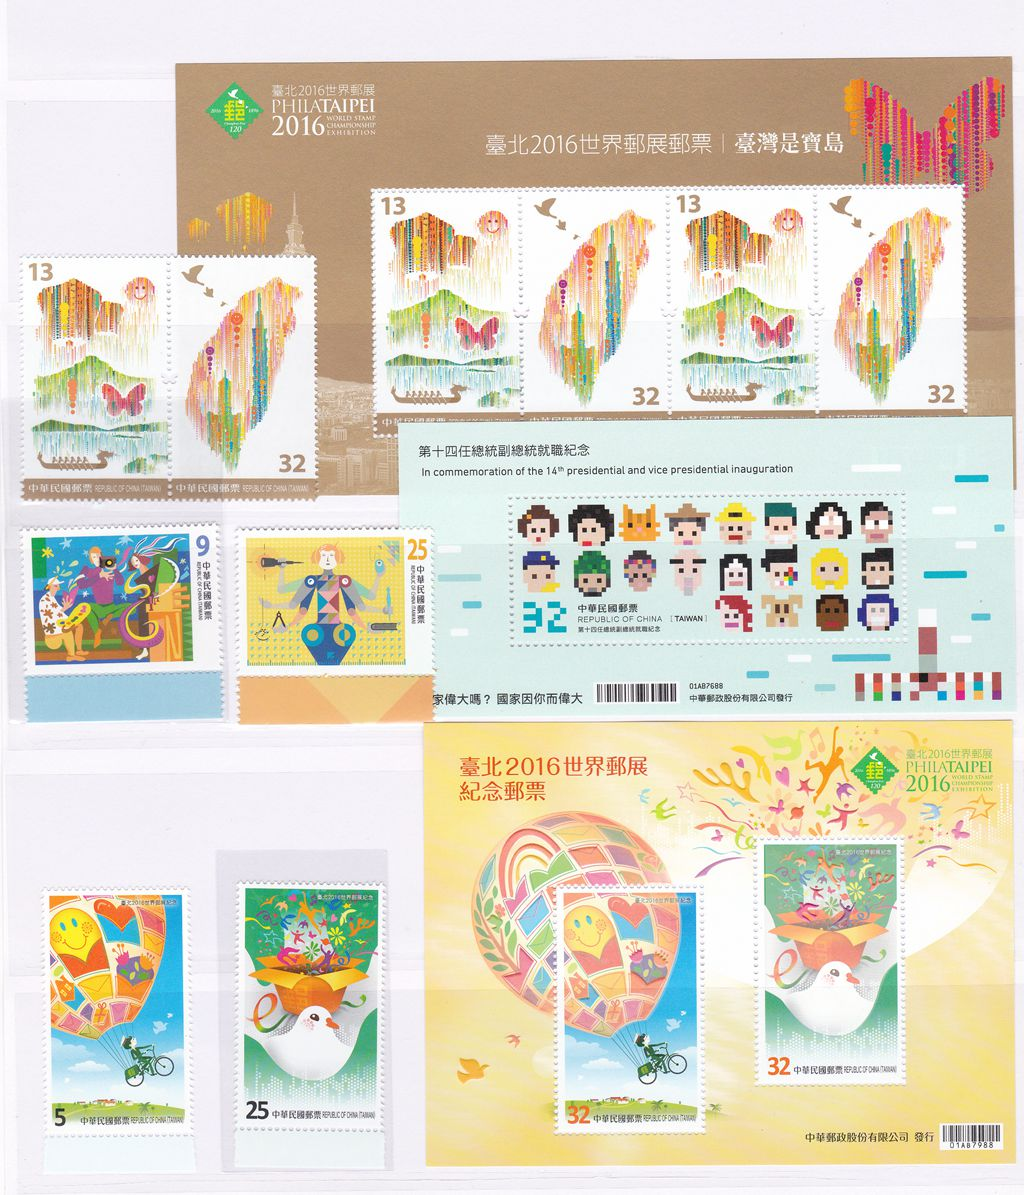 M8303, Taiwan (R.O.China) 2016 Full Year Stamps and MS, with Bamboo Stamp